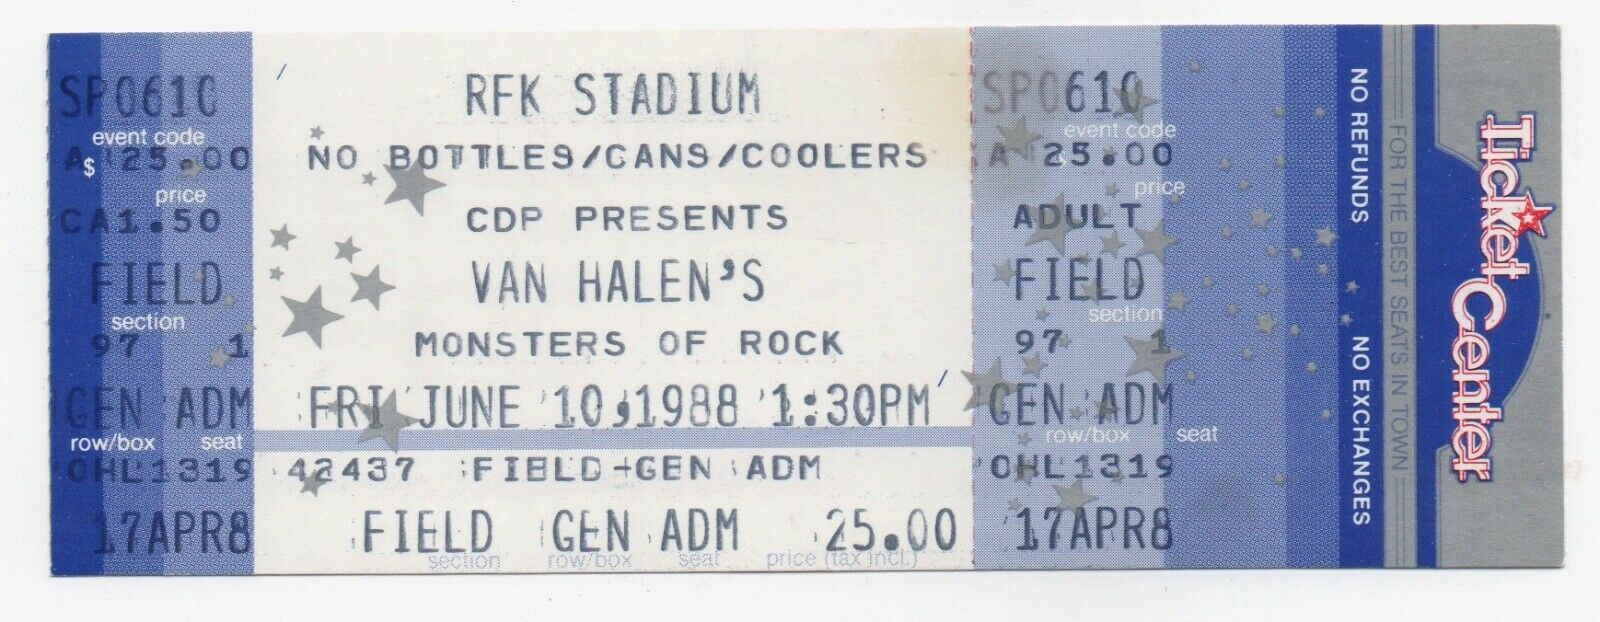 UNUSED Van Halen Monsters Of Rock Concert Ticket Stub June 10 1988 RFK Stadium  - $19.99